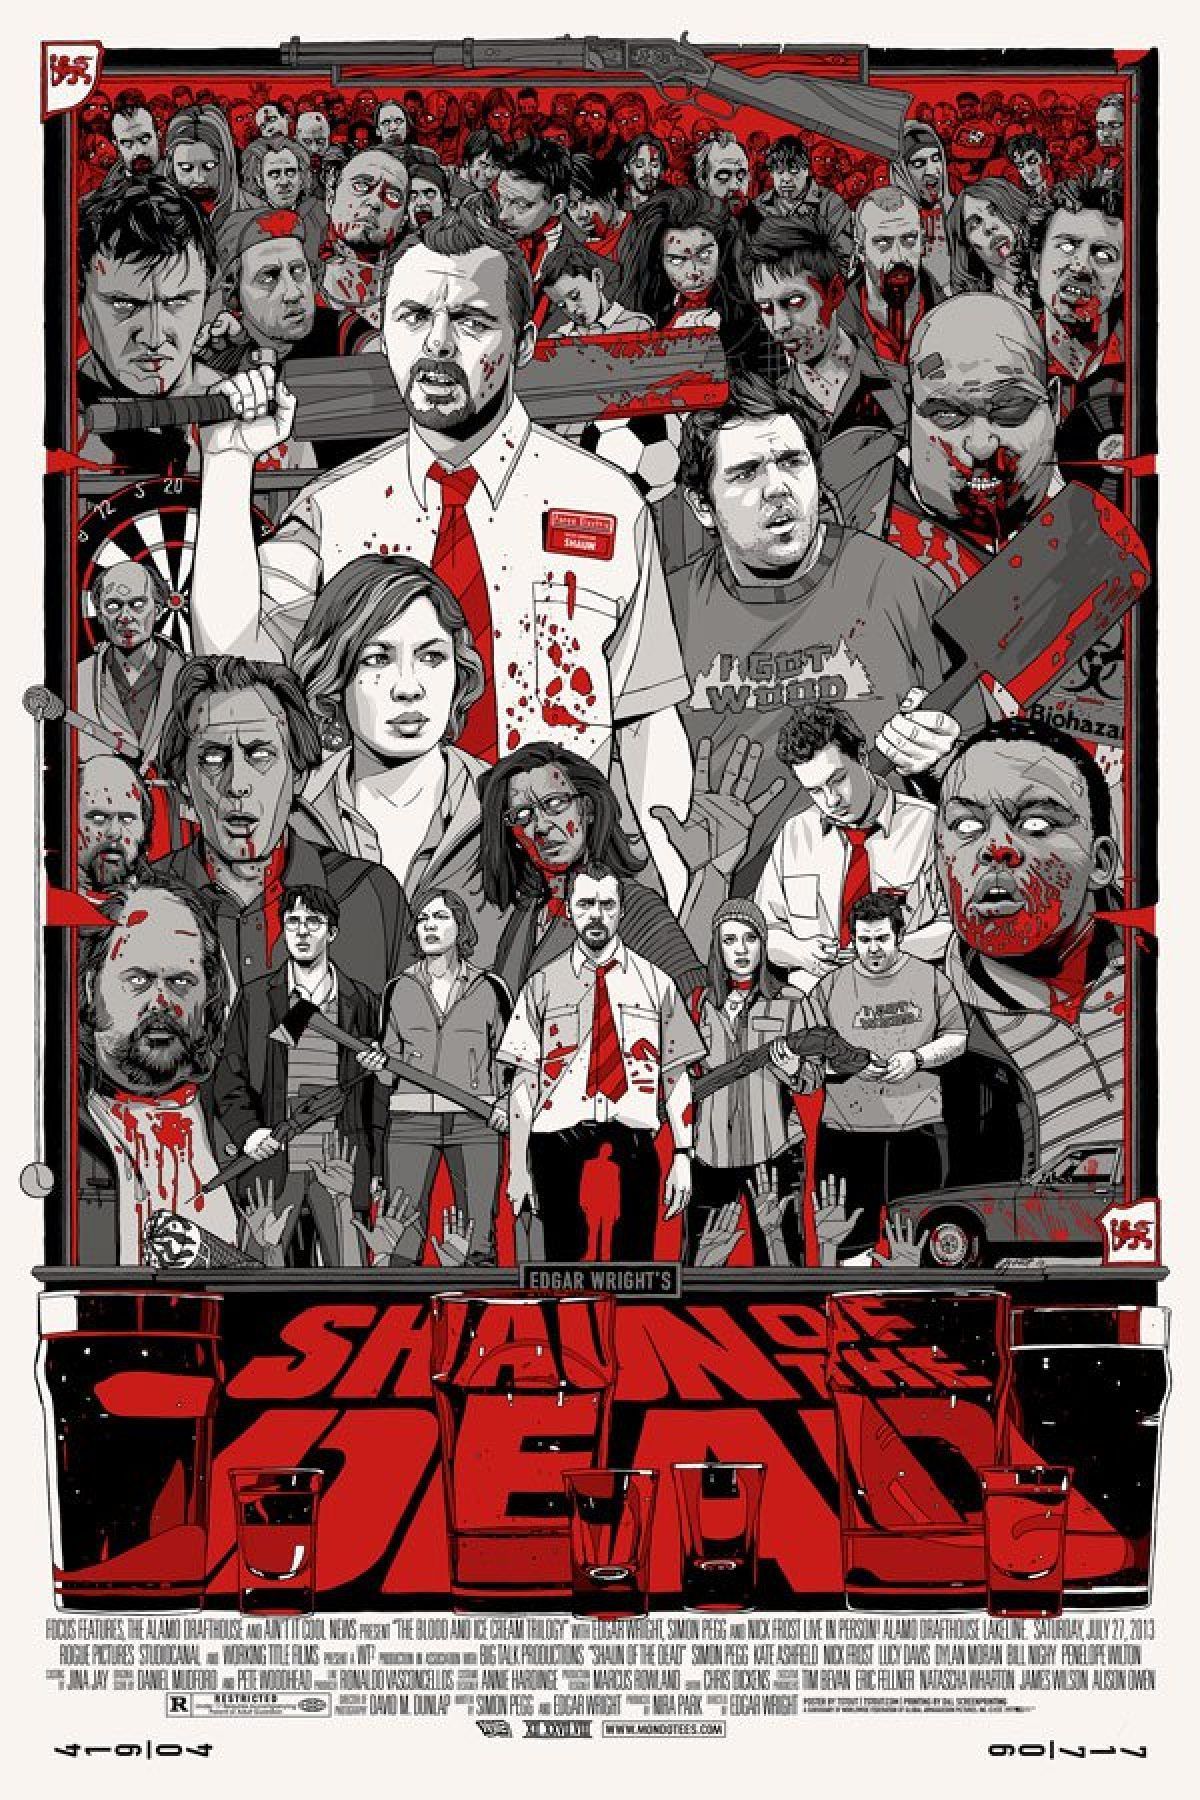 0305c57f6c033872a16aae97a977d397 movie poster drawing shaun of the dead movies tv books Shaun of the Dead Meme at fashall.co